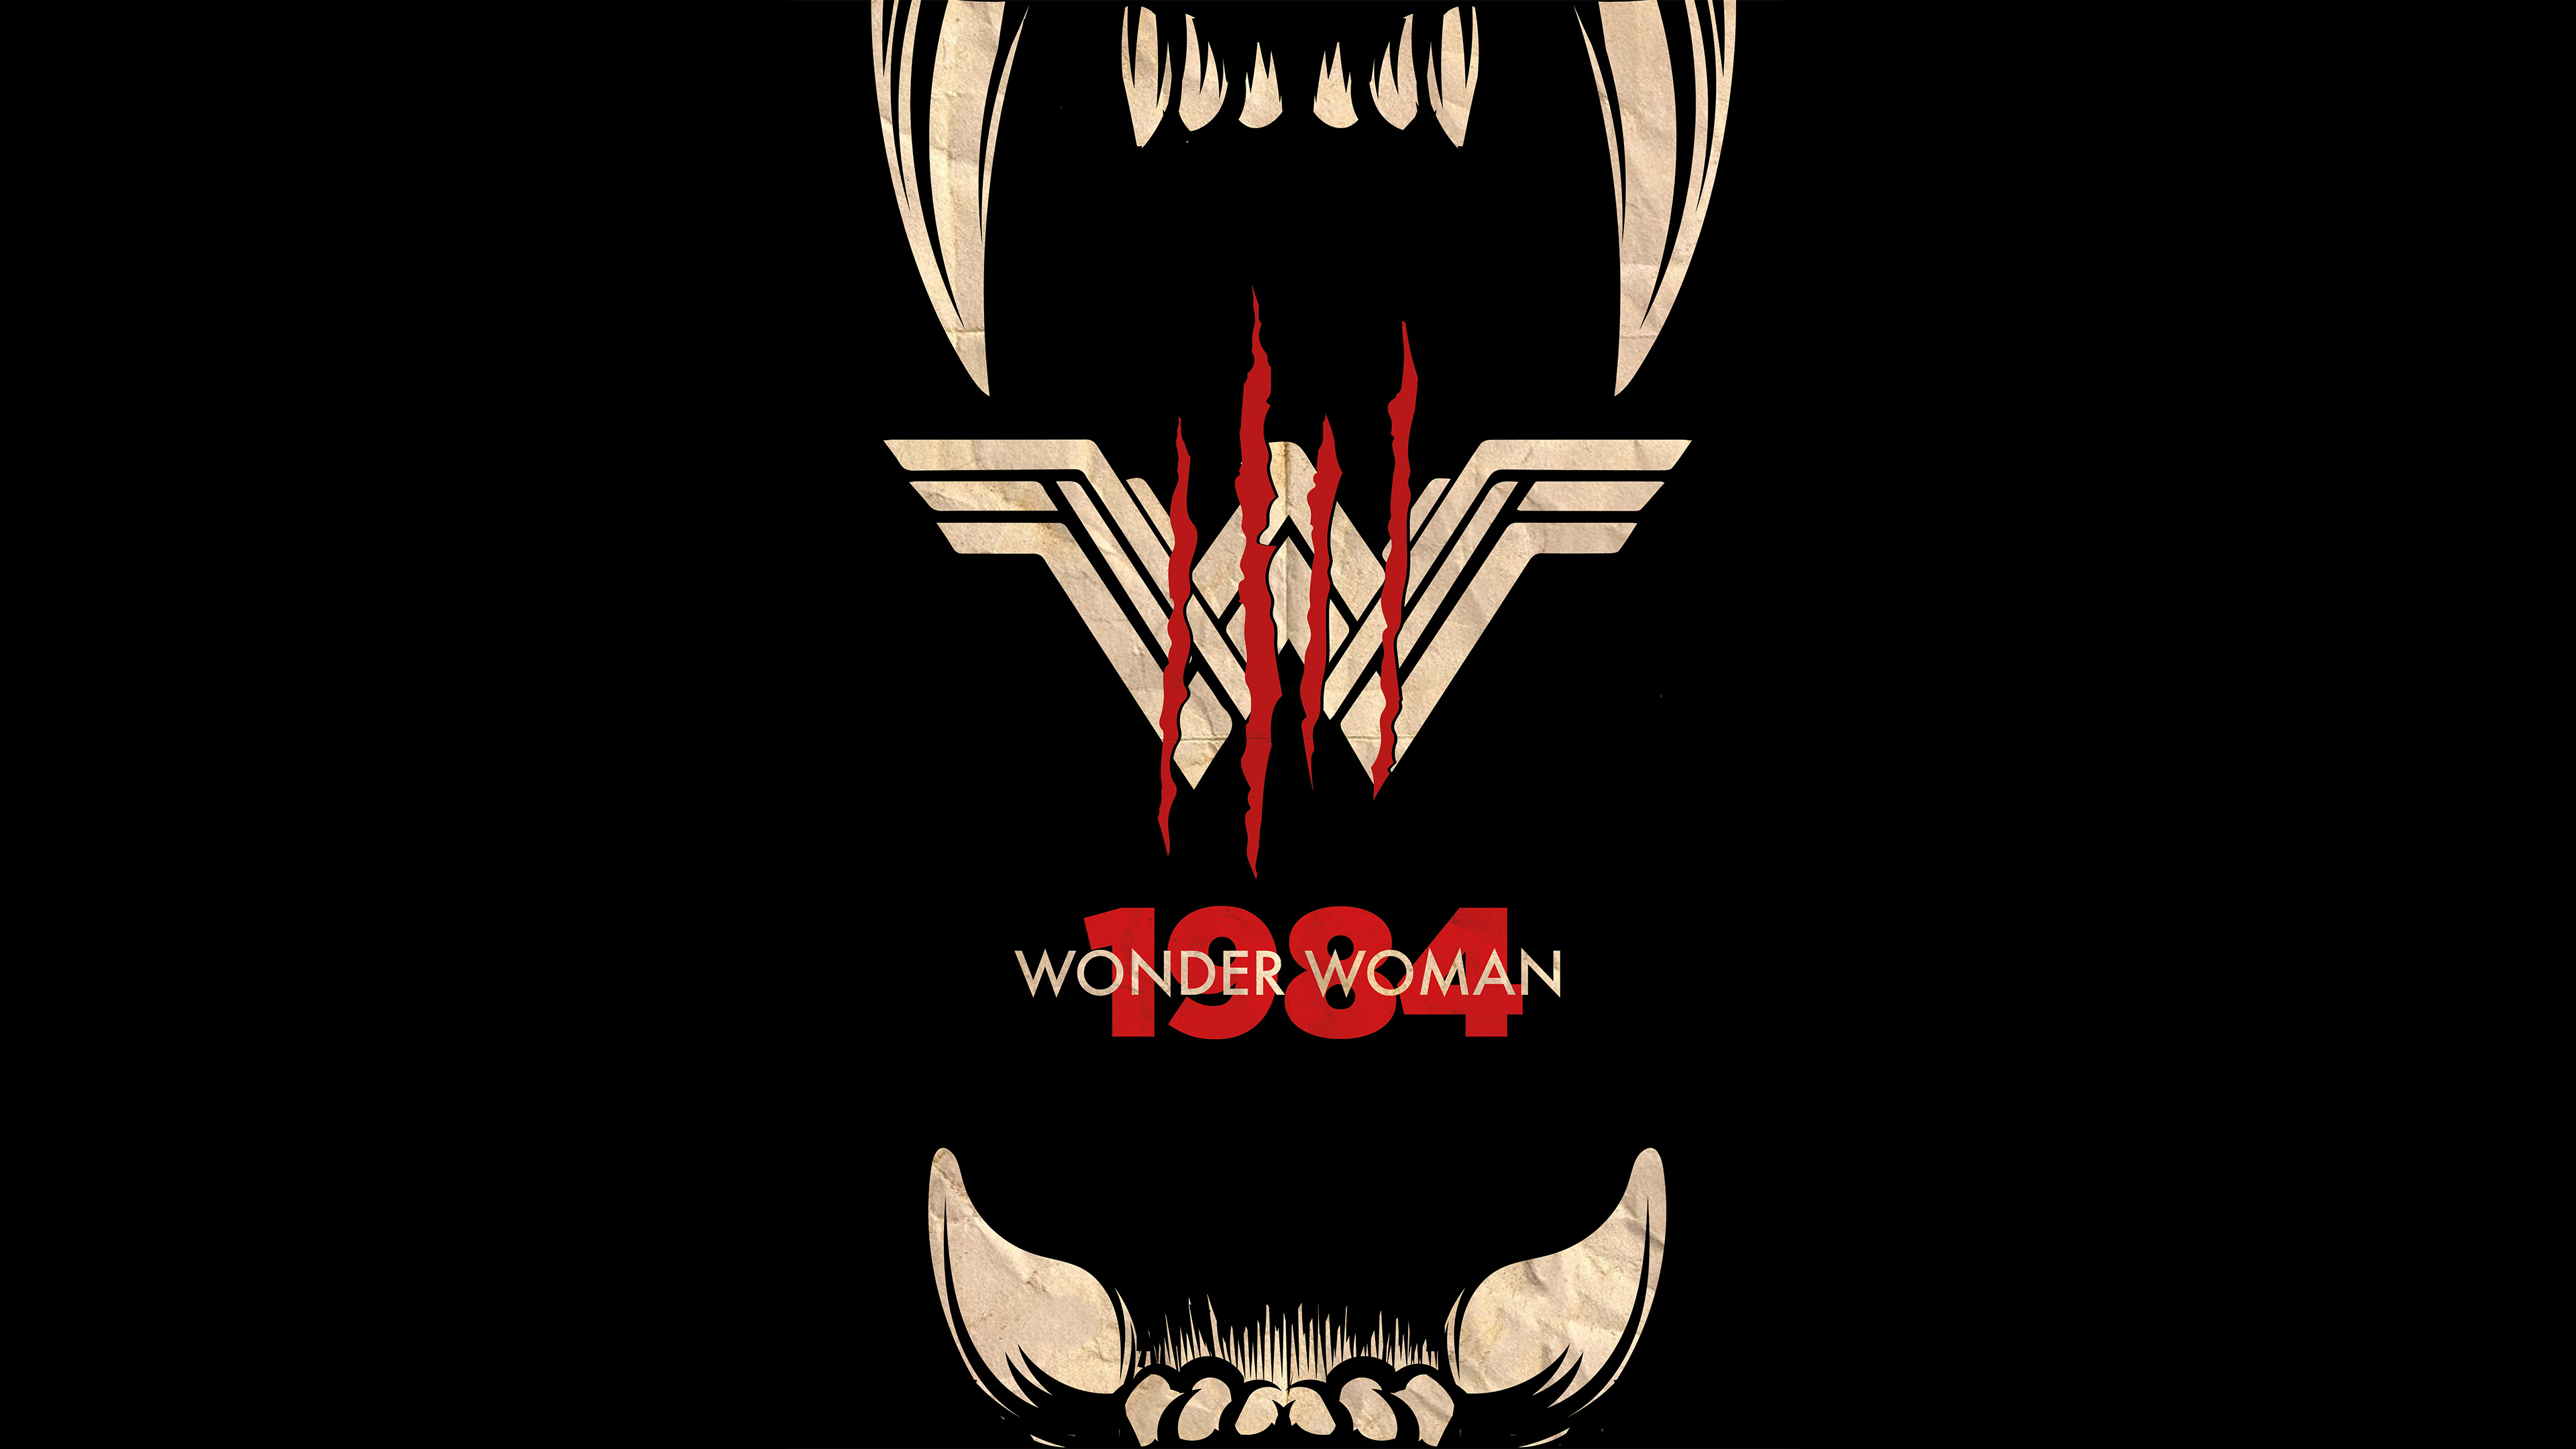 Wonder Woman 1984 Movie Poster Hd Movies 4k Wallpapers Images